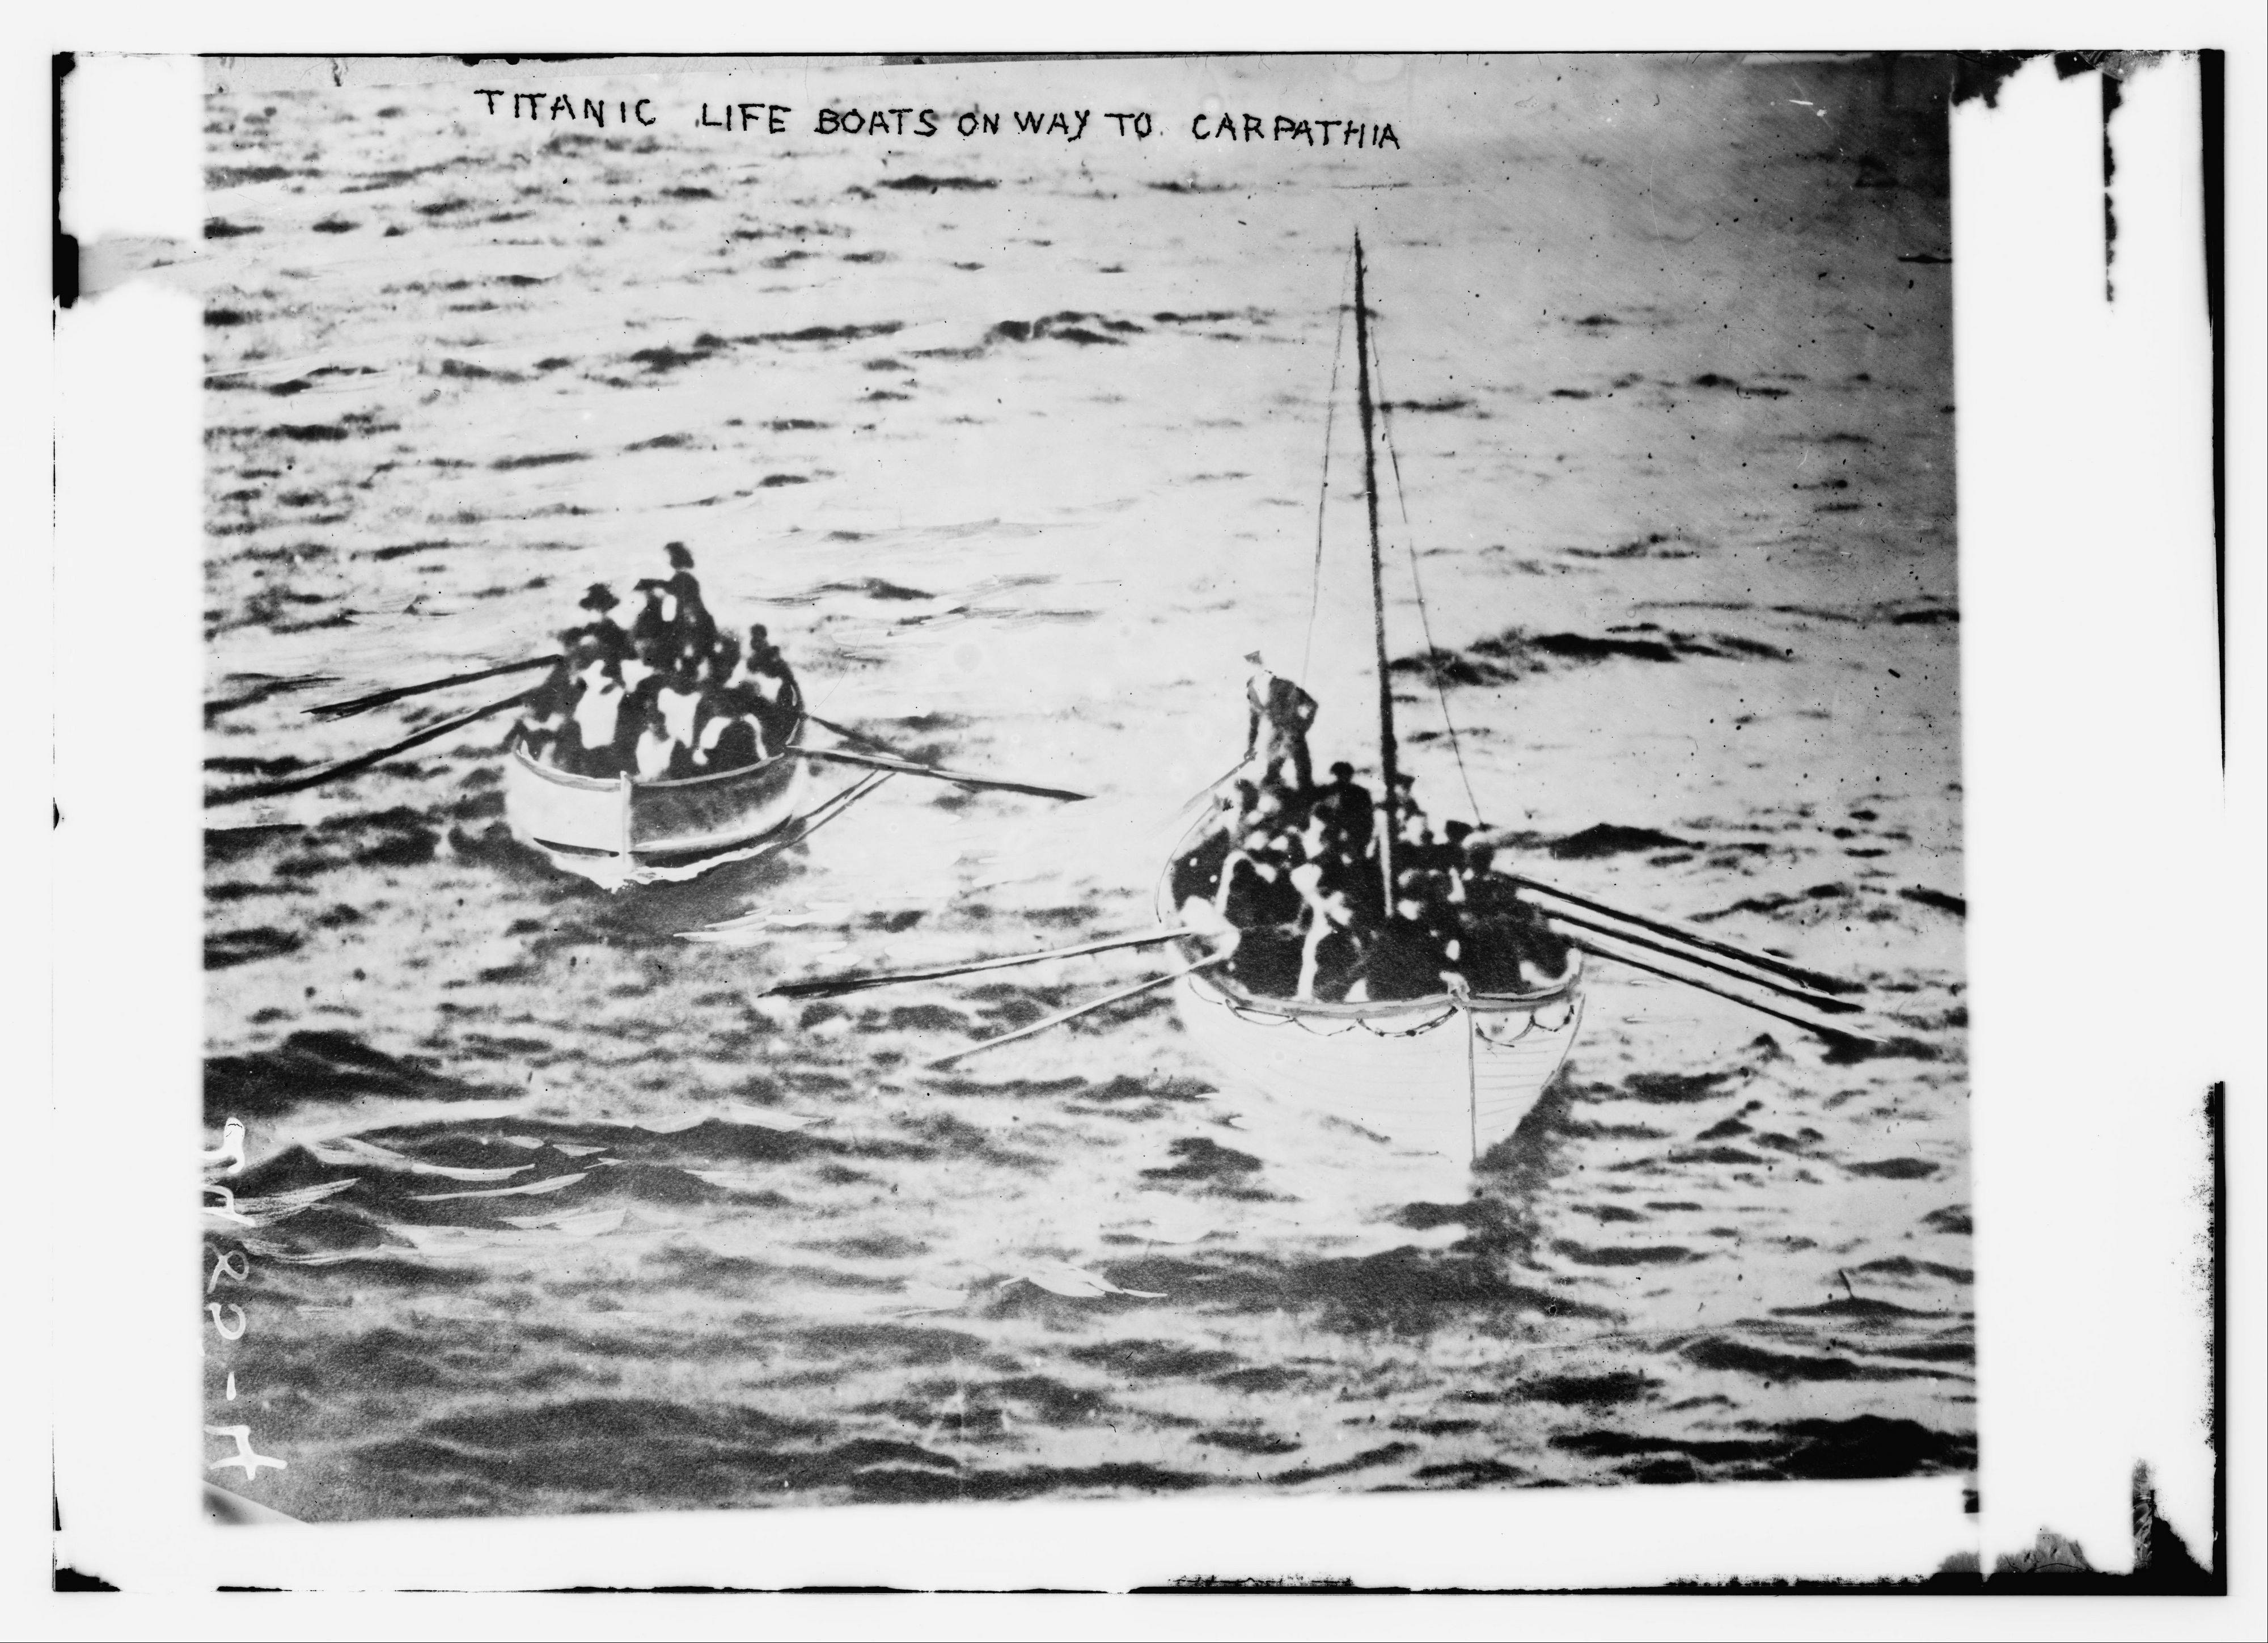 Lifeboat number 14, right, tows collapsible D toward the Carpathia in the early morning on April 15, 1912.